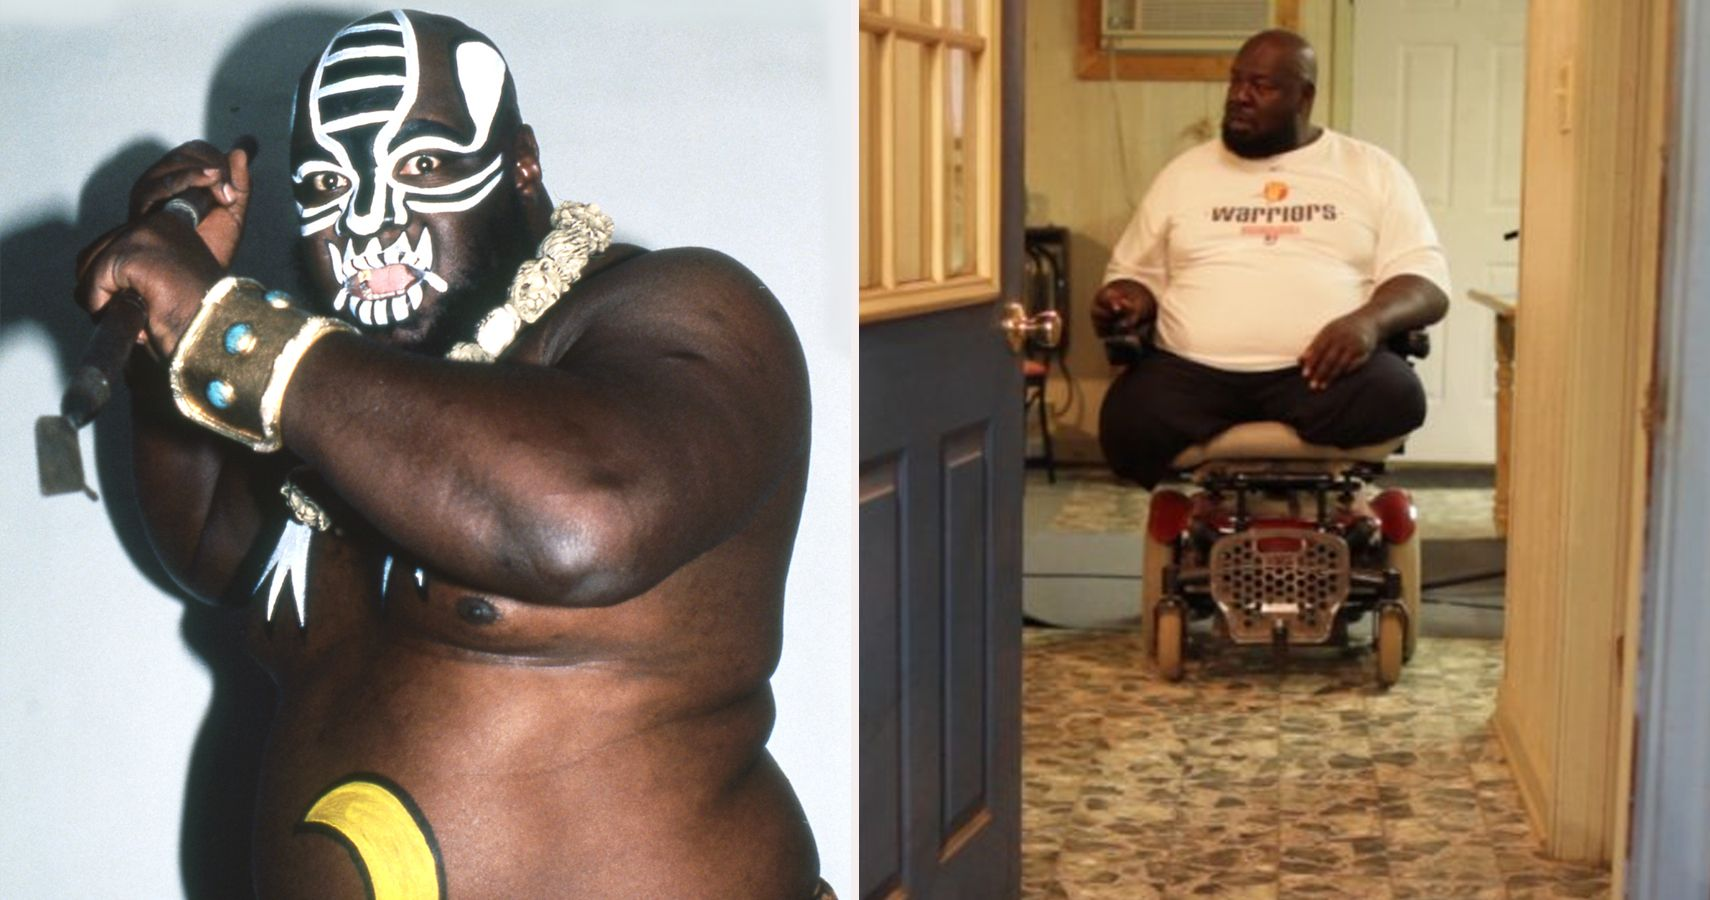 15 Unbelievable Go Fund Me Charities Involving Professional Wrestlers